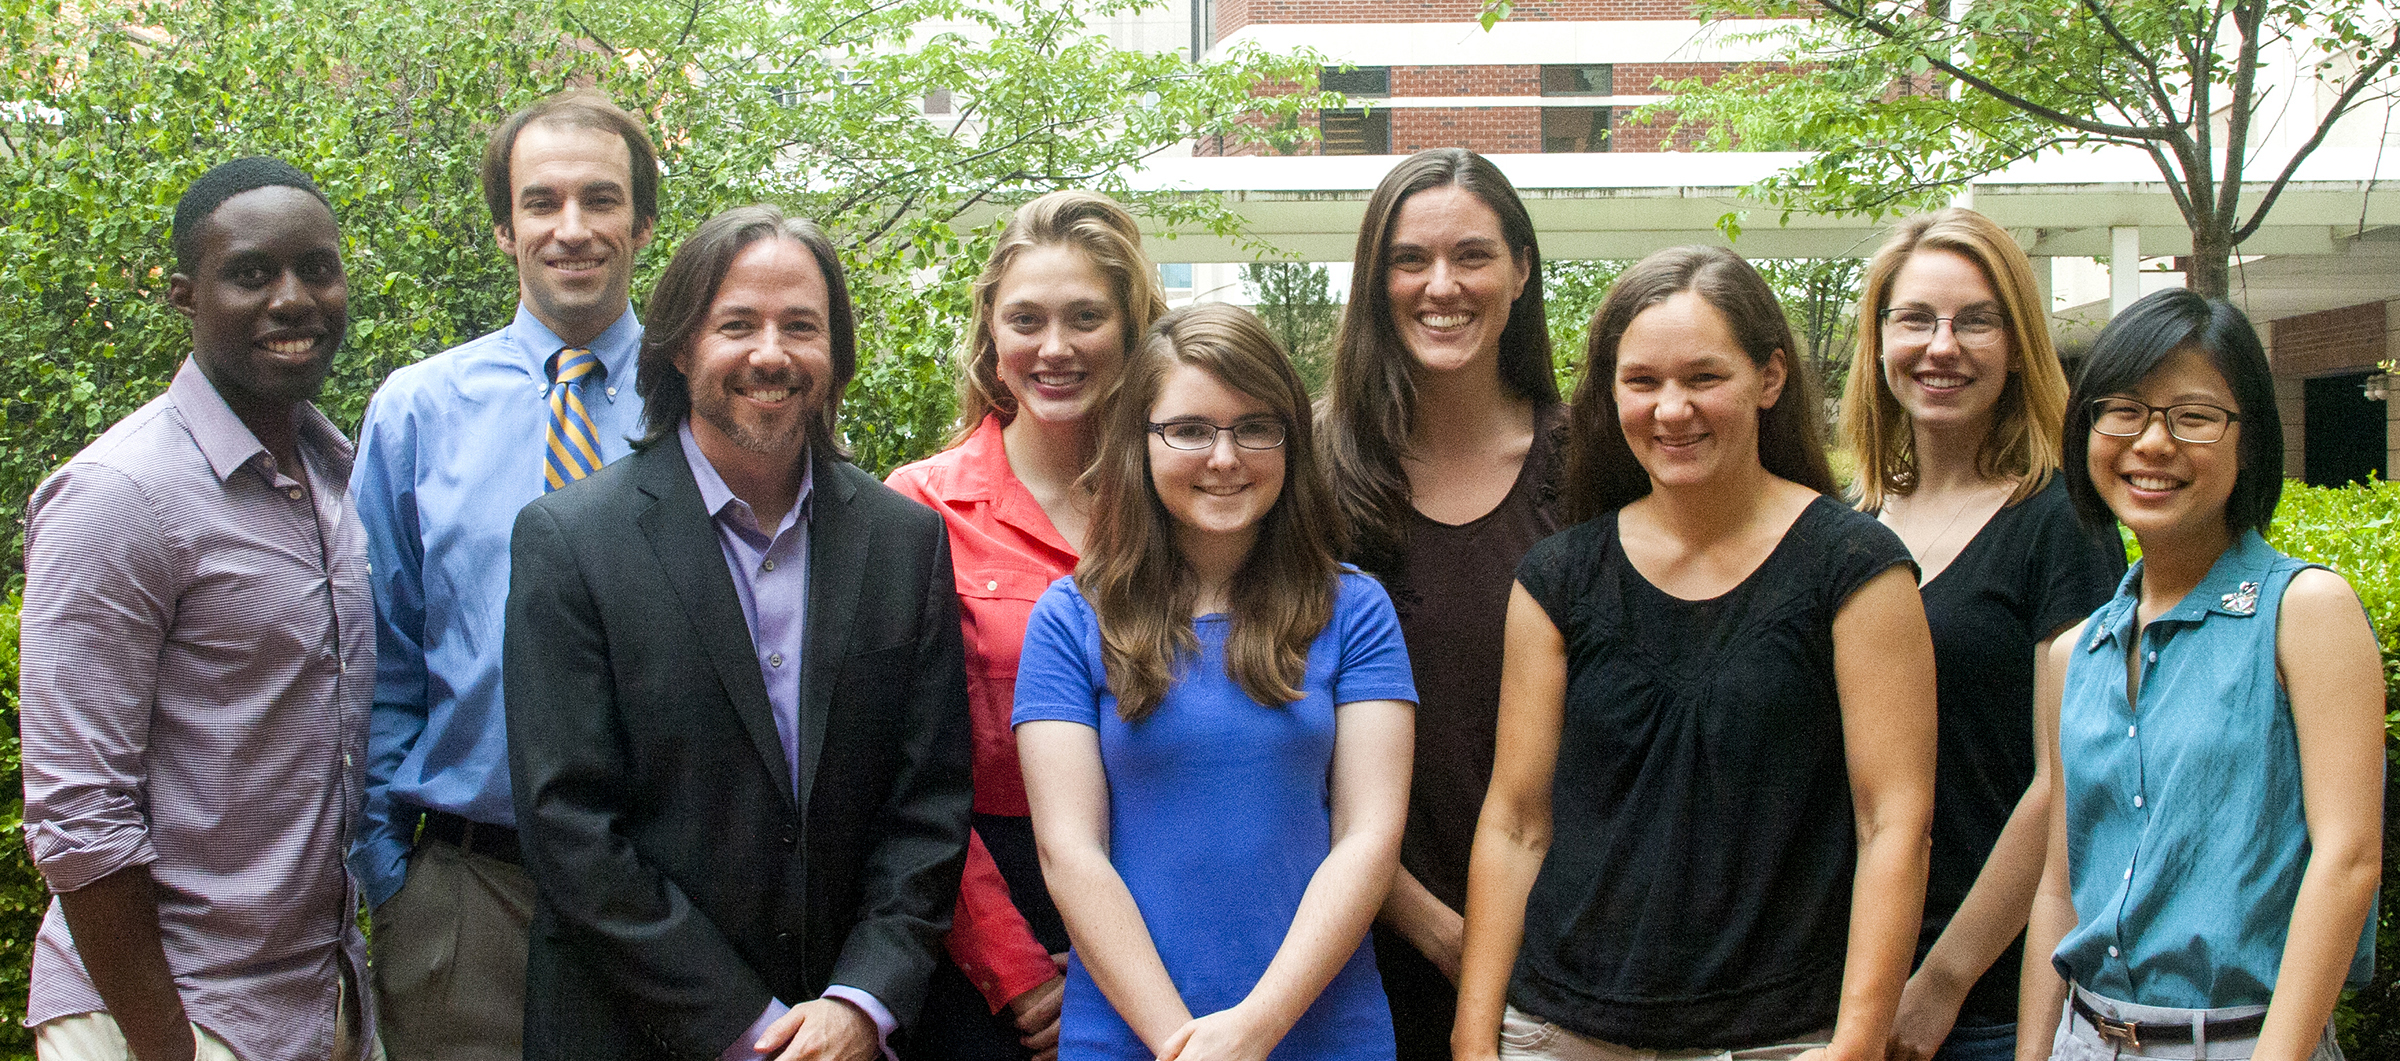 Irish lab at Vanderbilt, July 2014